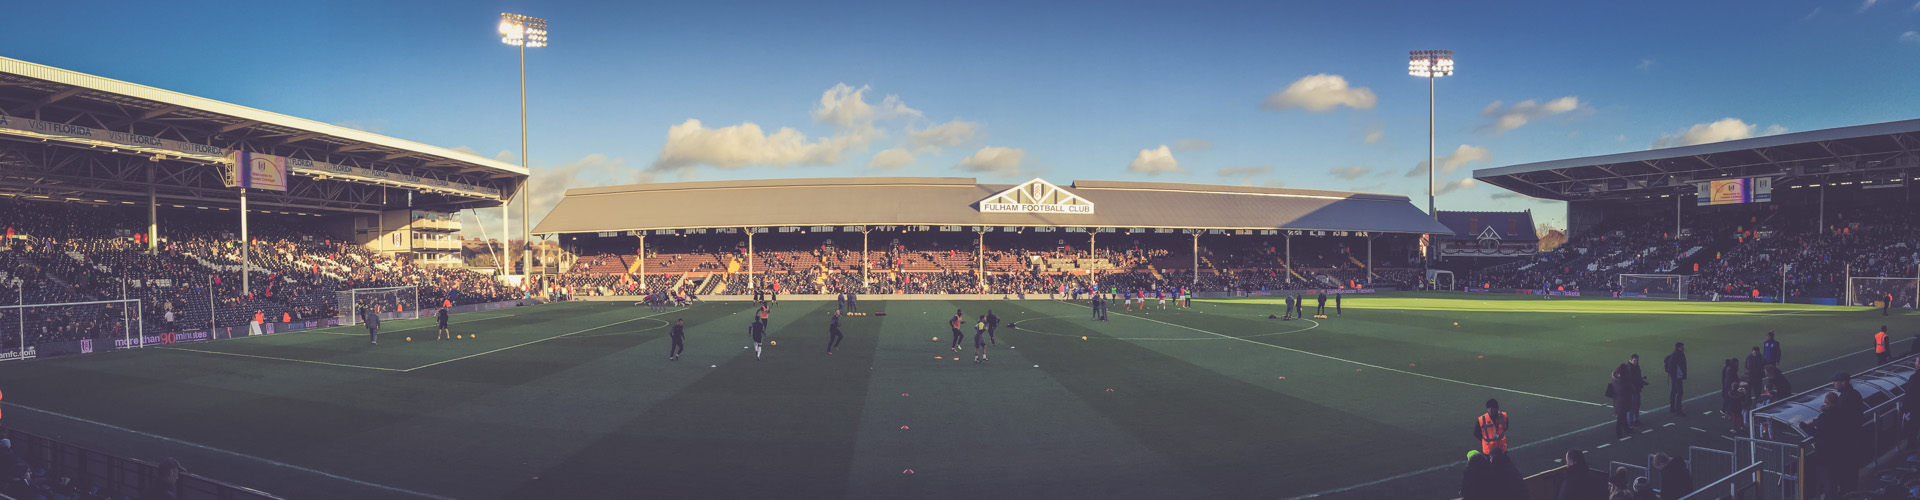 Craven Cottage Panorama - Fulham FC London